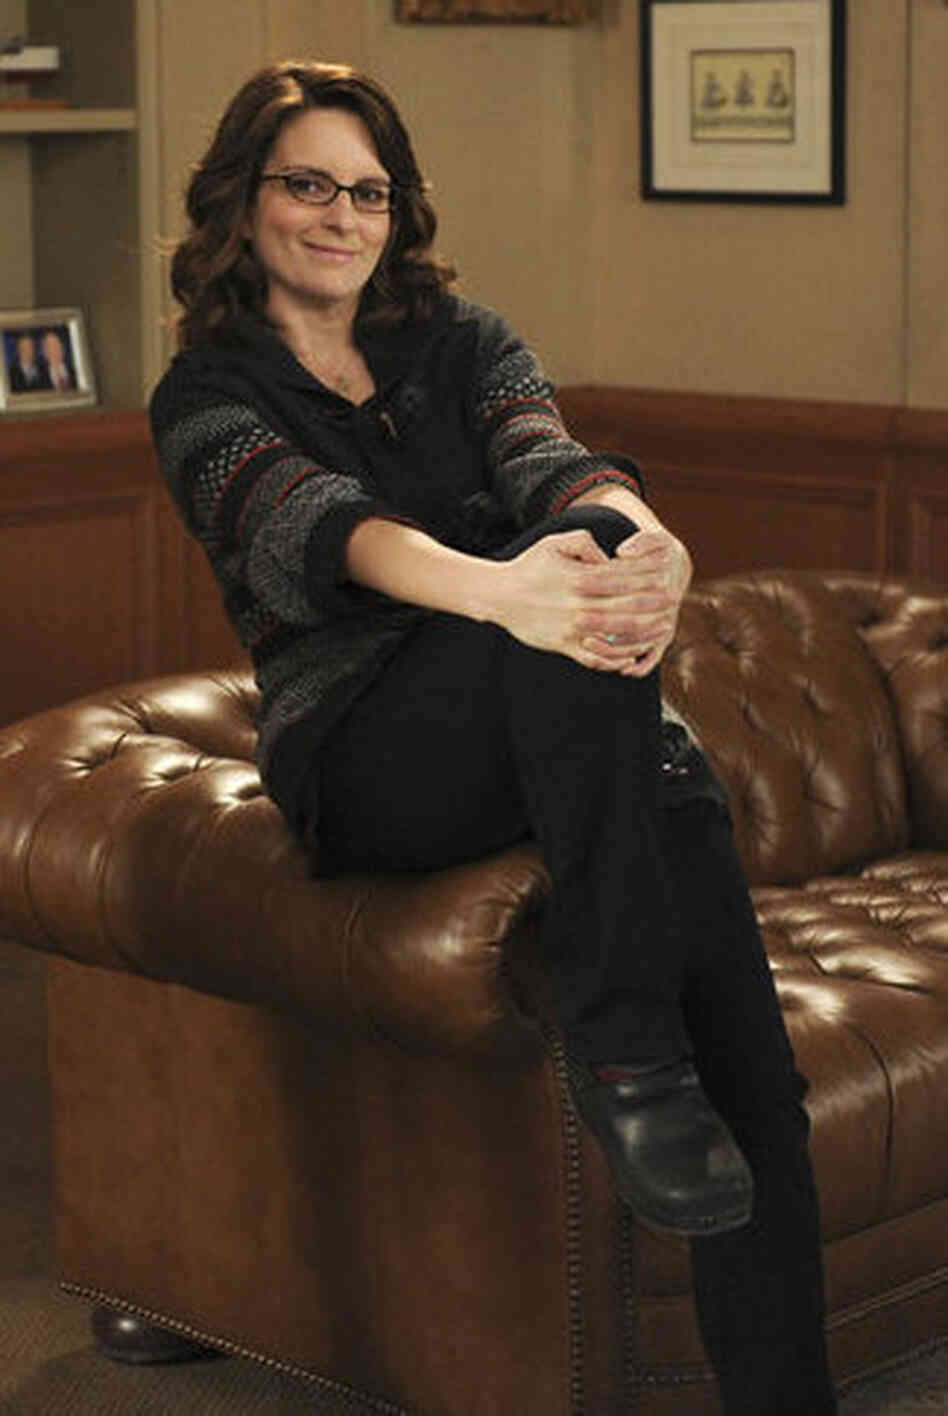 Tina Fey as Liz Lemon on NBC's 30 Rock.